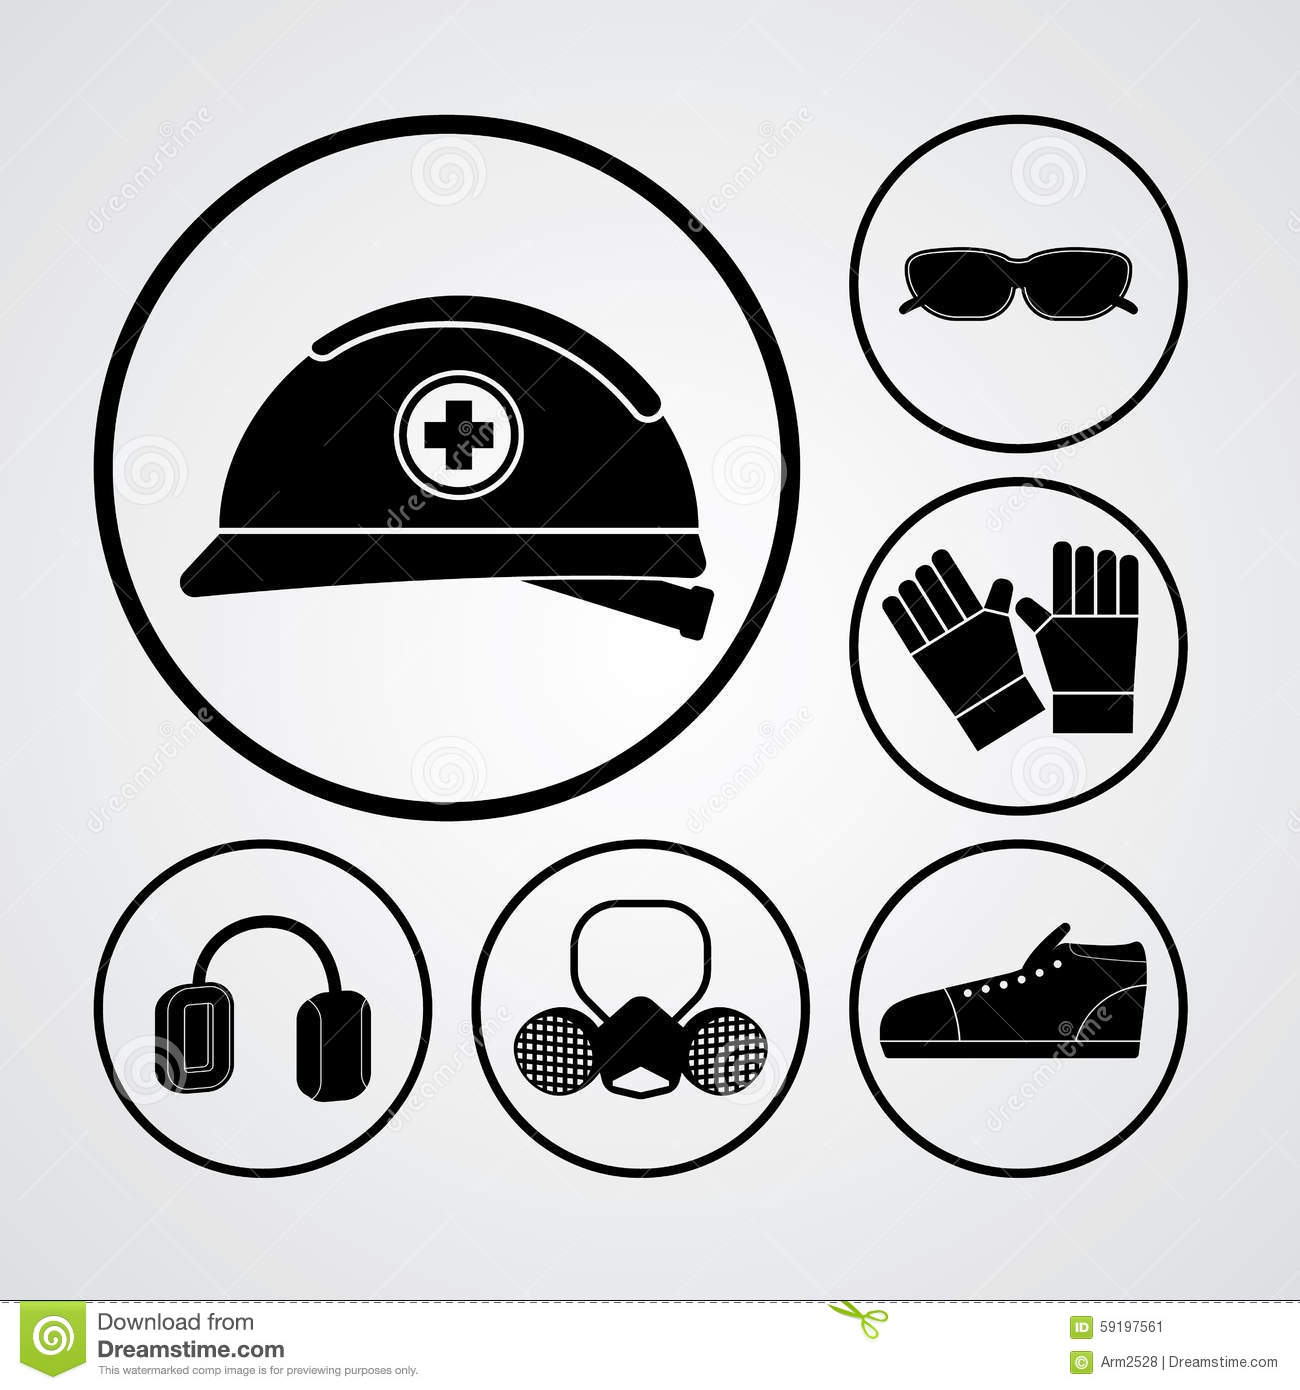 Ppe Stock Vector Image 59197561